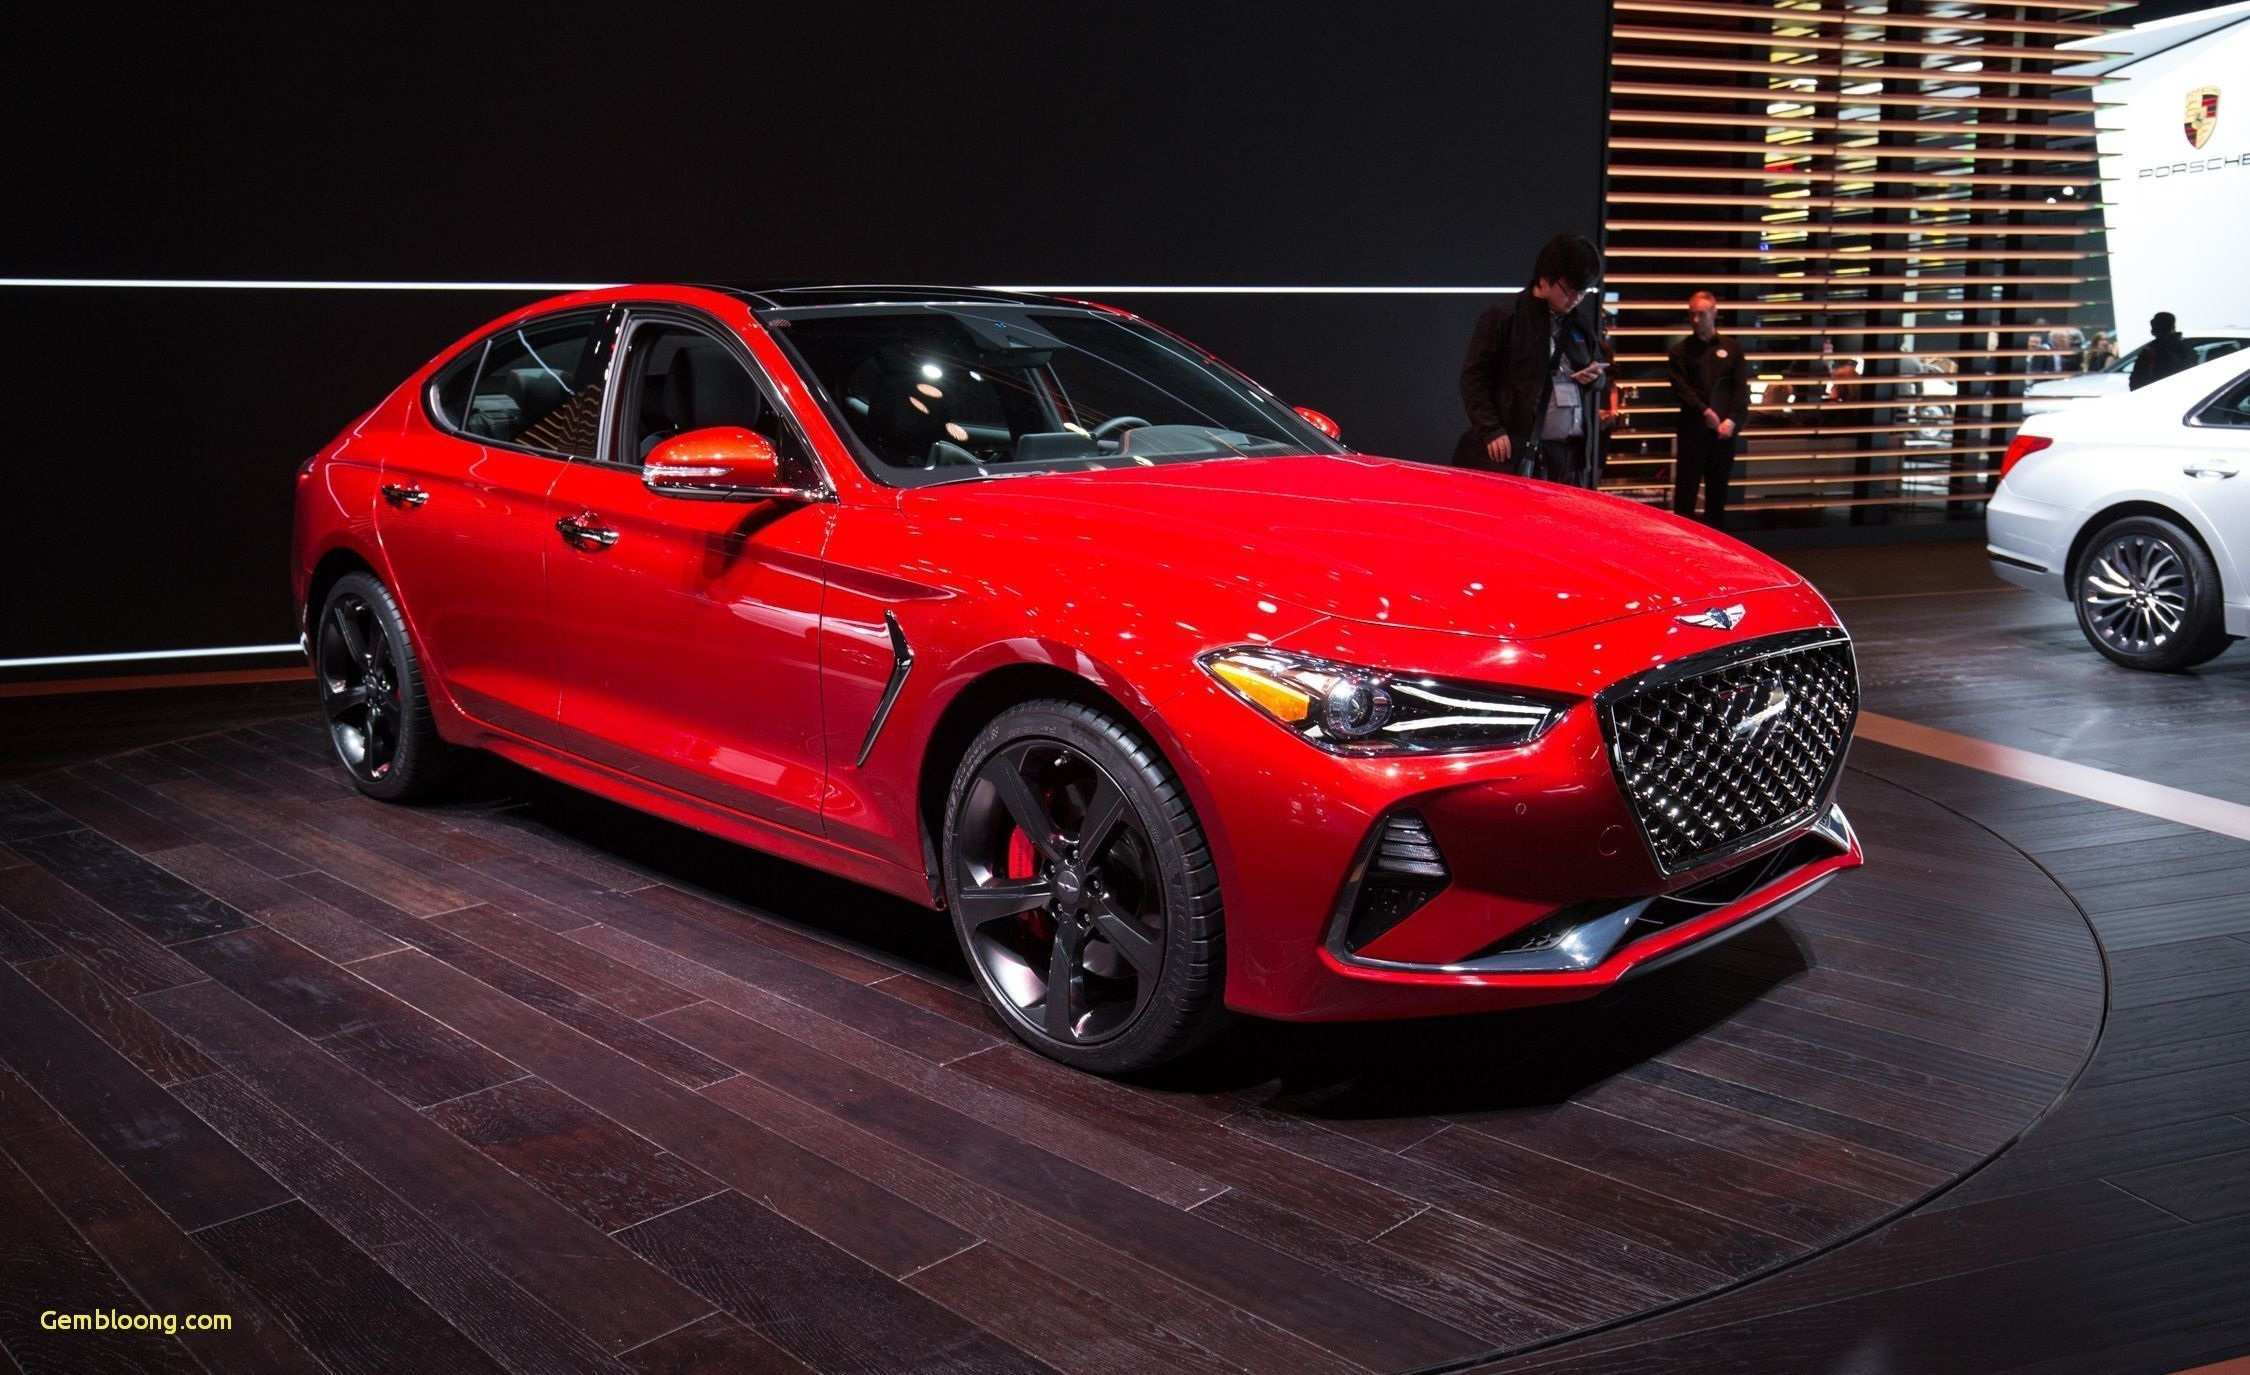 53 All New 2020 Hyundai Genesis Coupe V8 Redesign